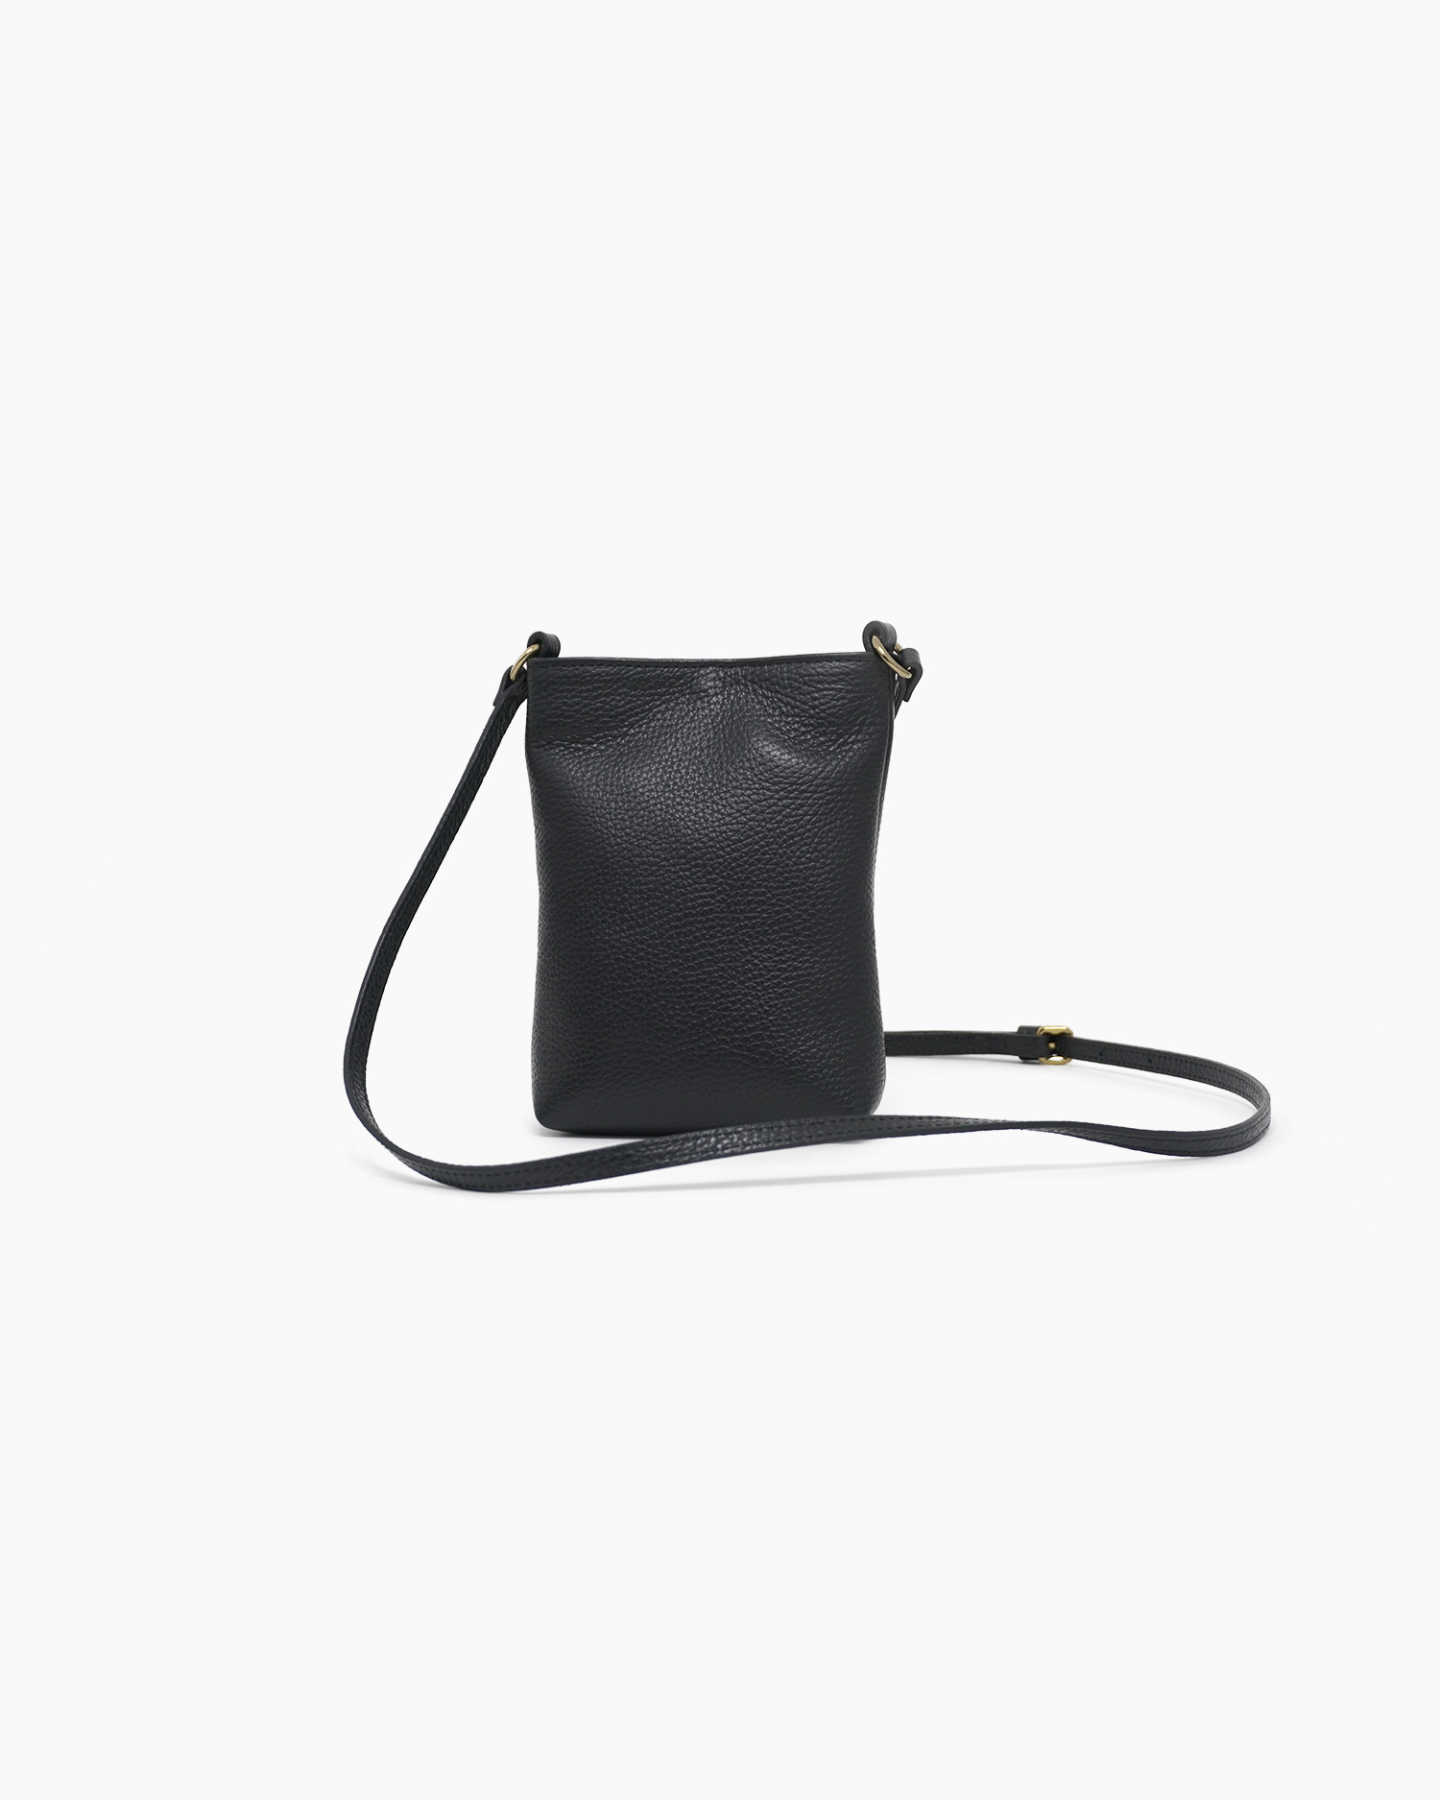 Italian Pebbled Leather Phone Crossbody - Black - 6